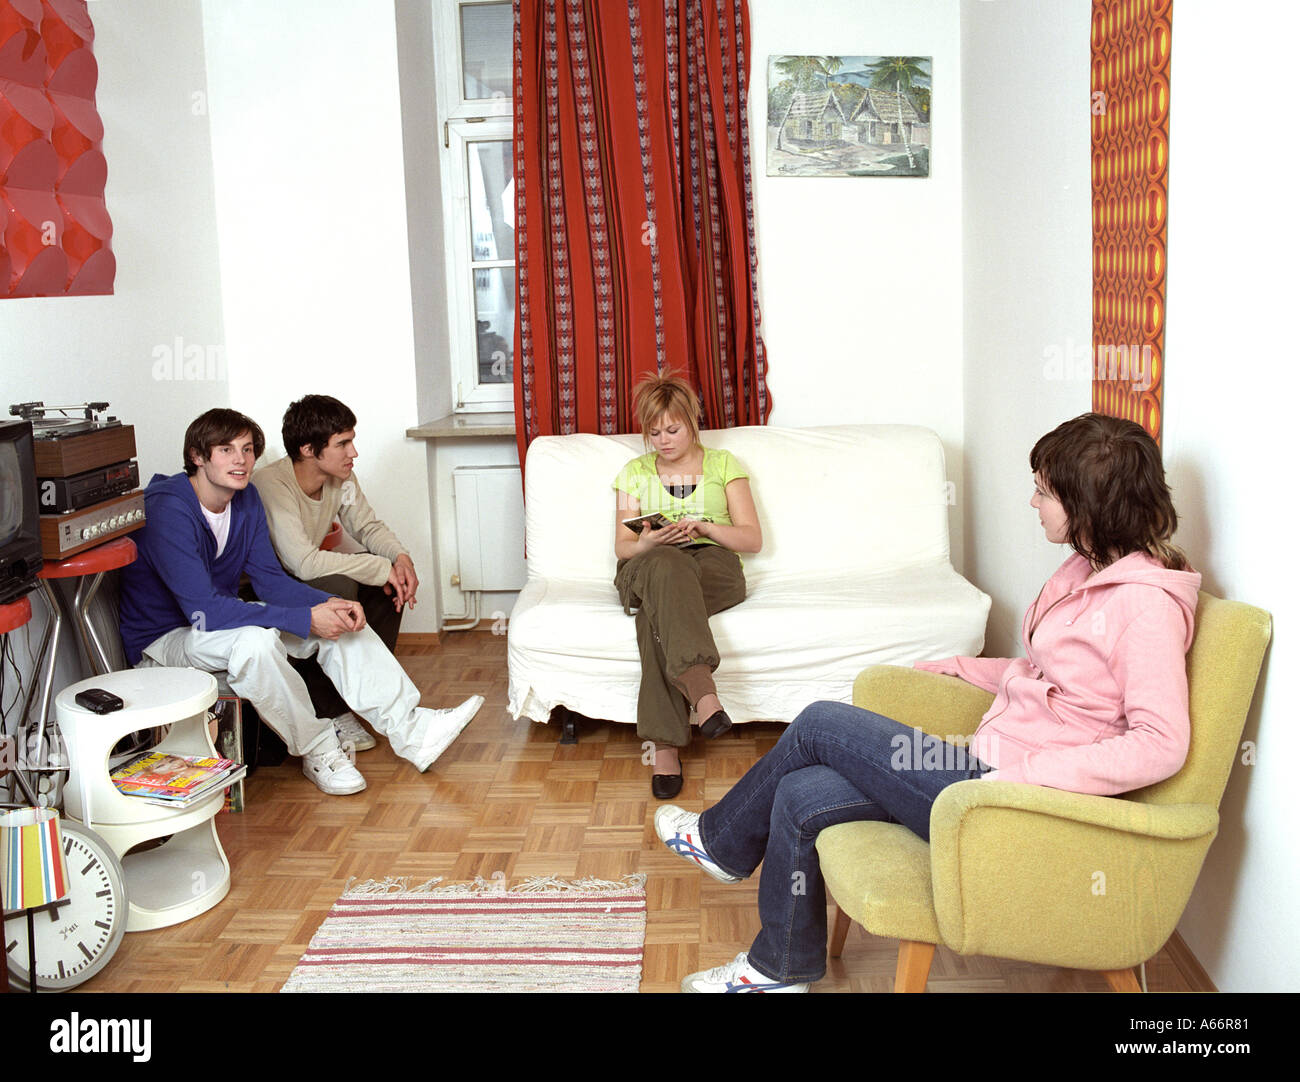 group of teenage friends sitting together in living room Stock